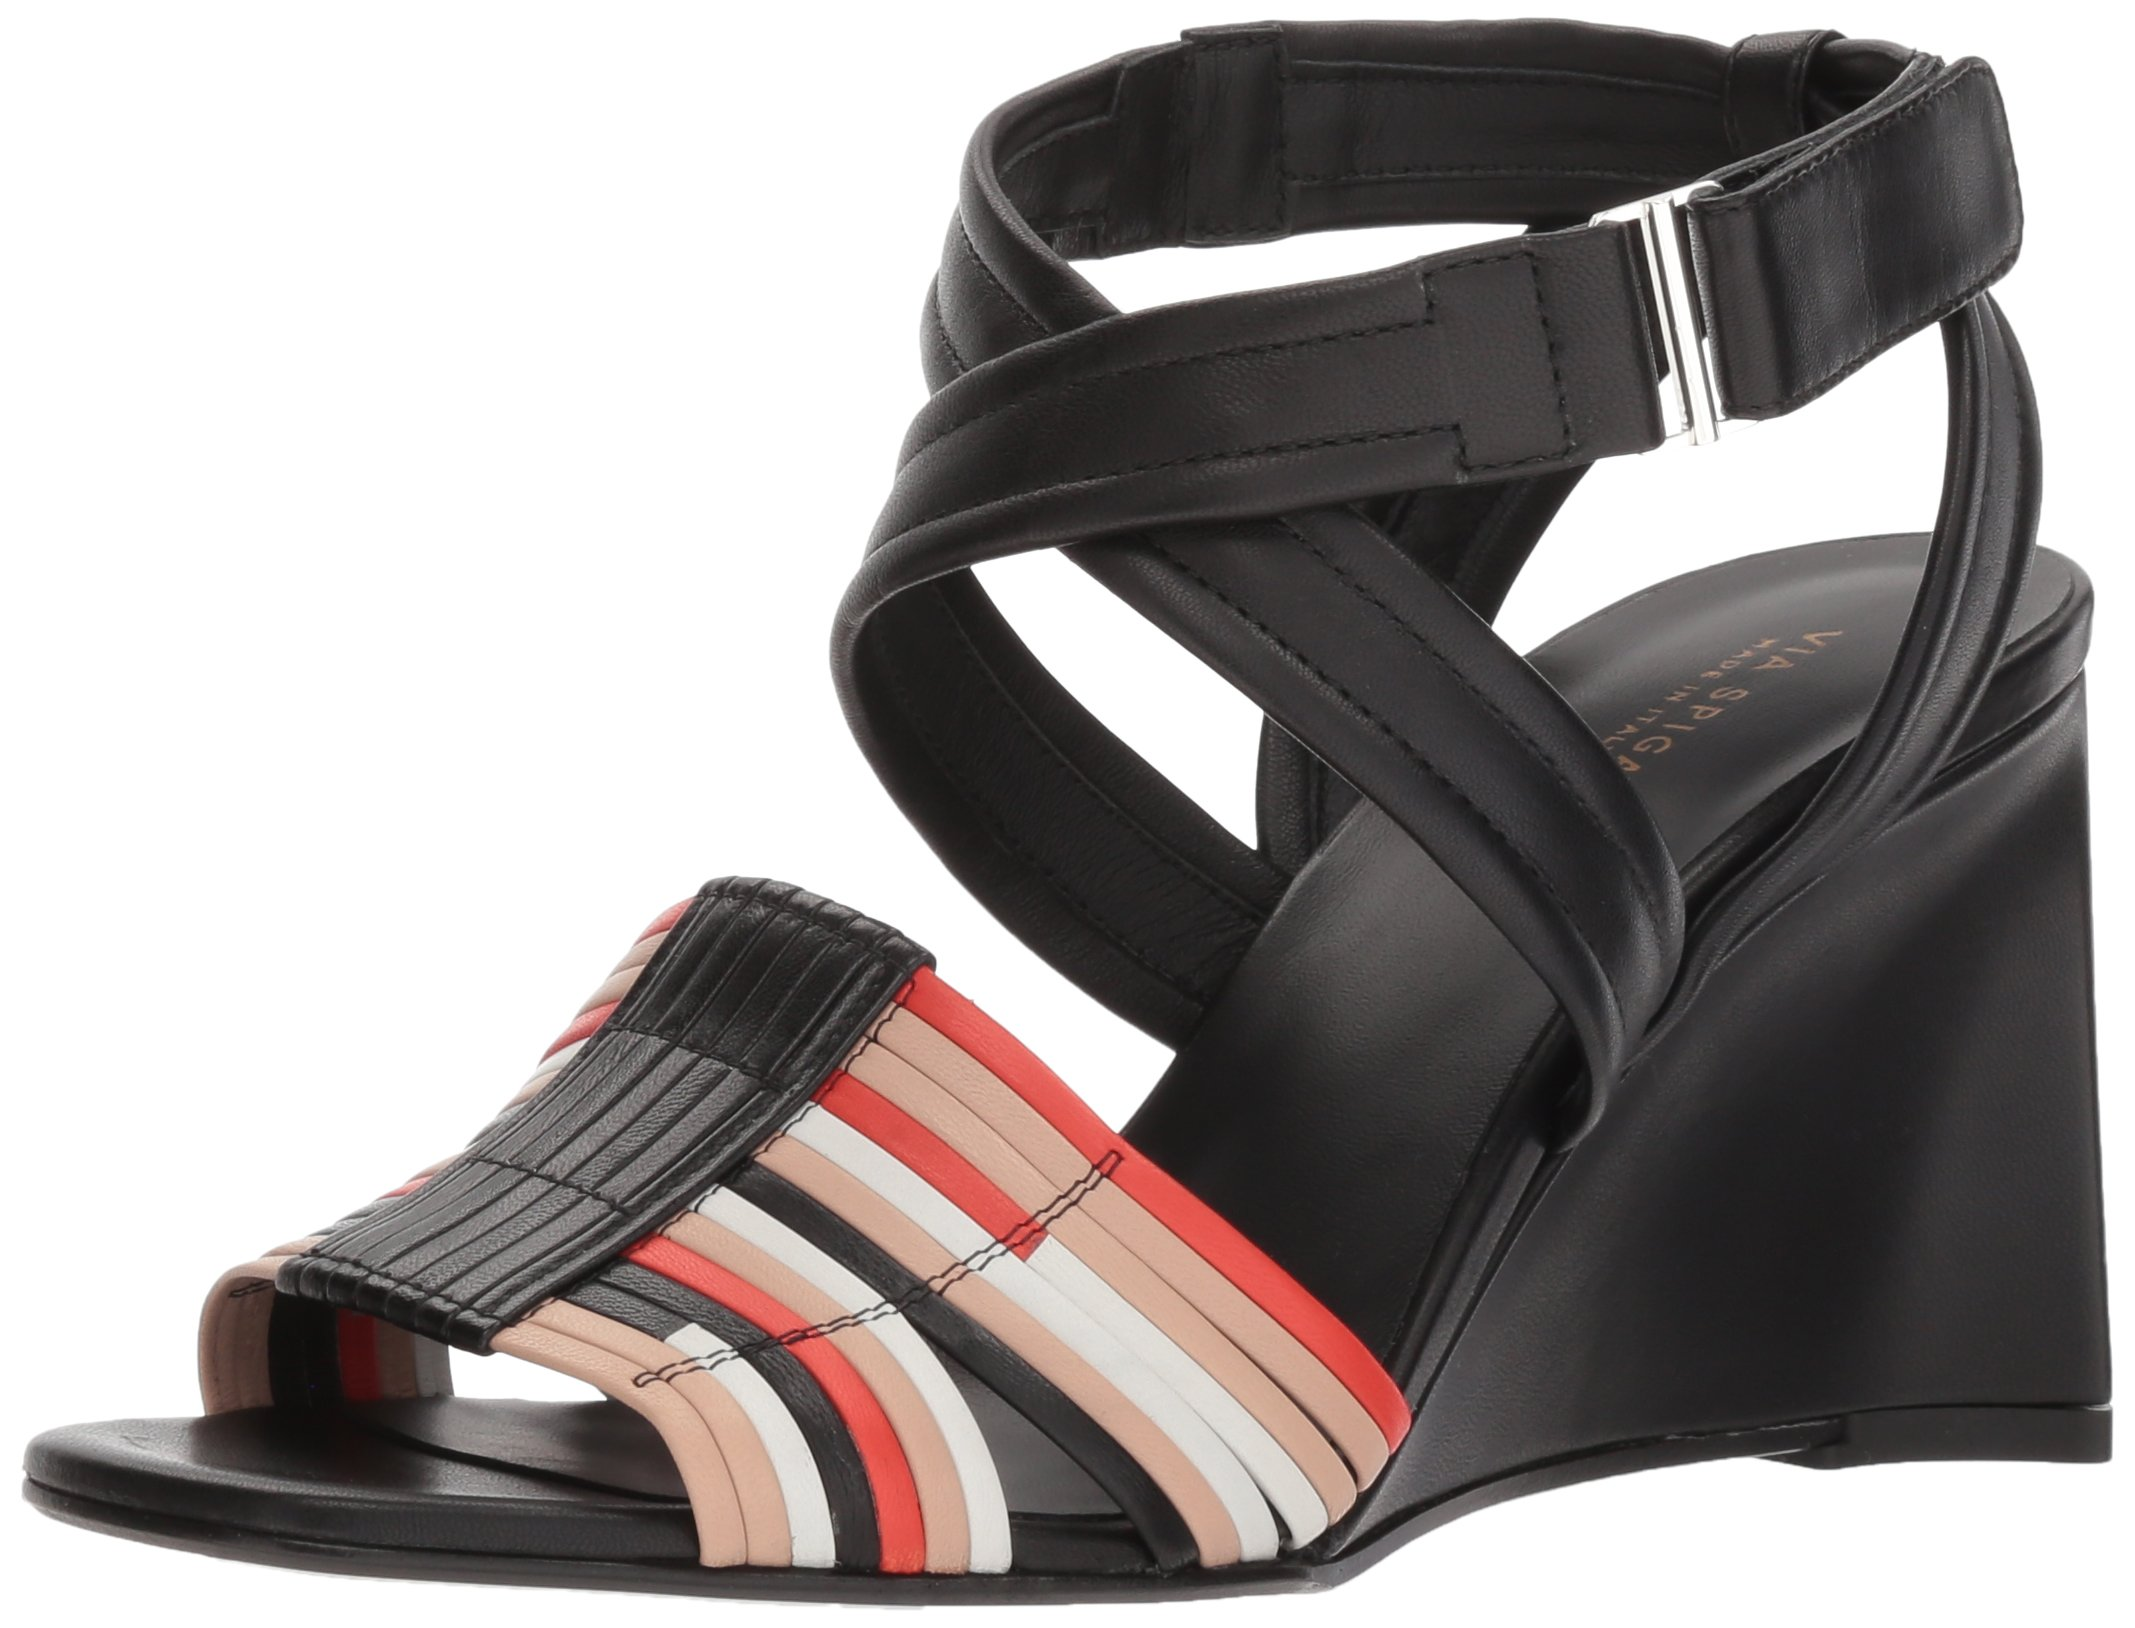 Via Spiga Women's Robyn Woven Wedge Sandal, Multicolor Leather, 9 Medium US